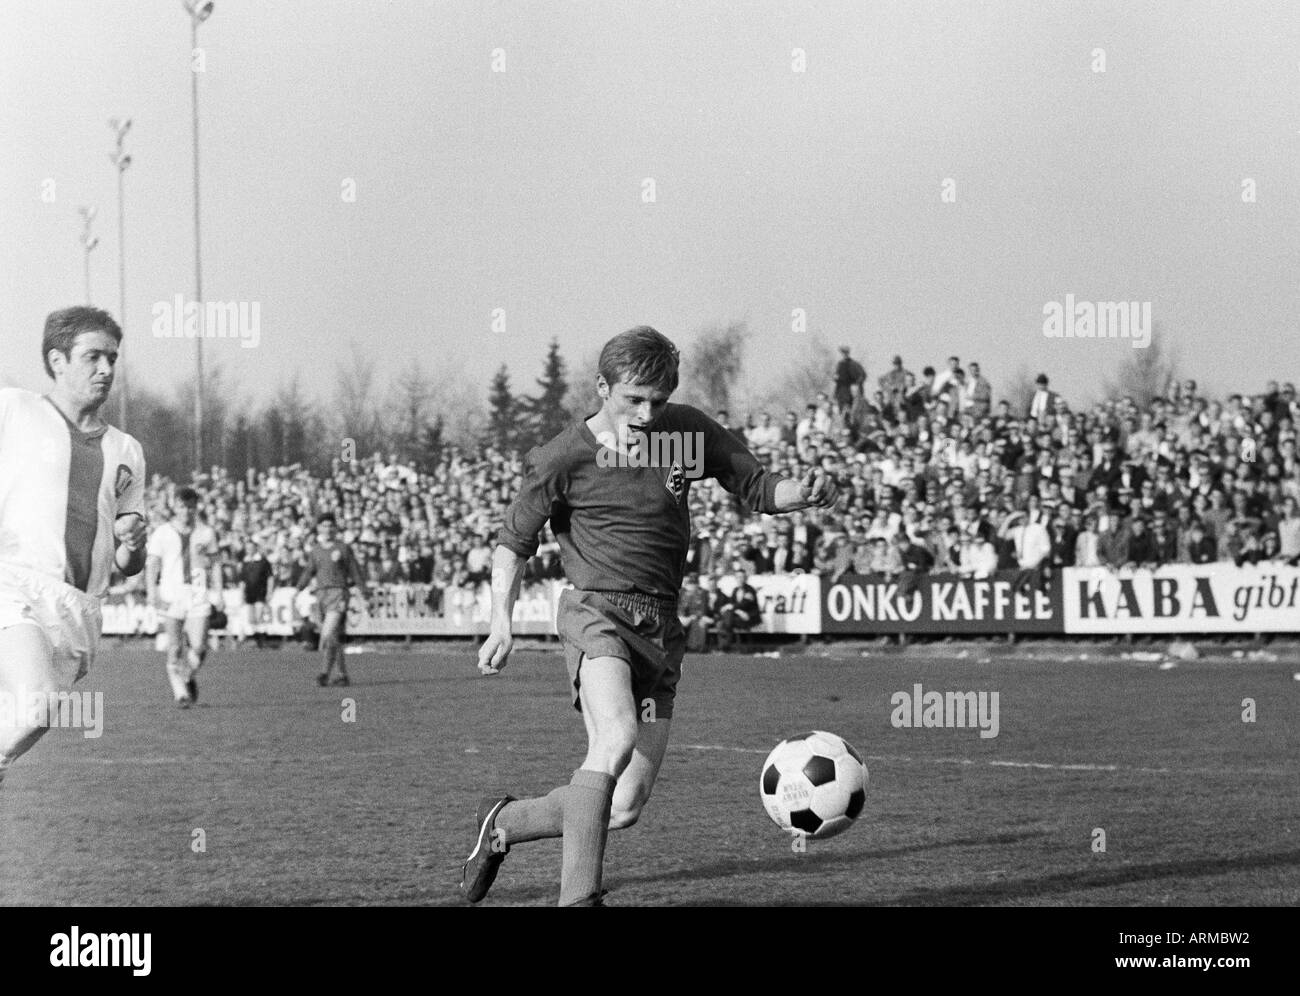 football, Bundesliga, 1967/1968, Borussia Moenchengladbach versus Karlsruher SC 0:0, Boekelberg Stadium, scene of the match, Klaus Ackermann (Gladbach) in ball possession, left Willi Duerrschnabel (Karlsruhe) - Stock Image